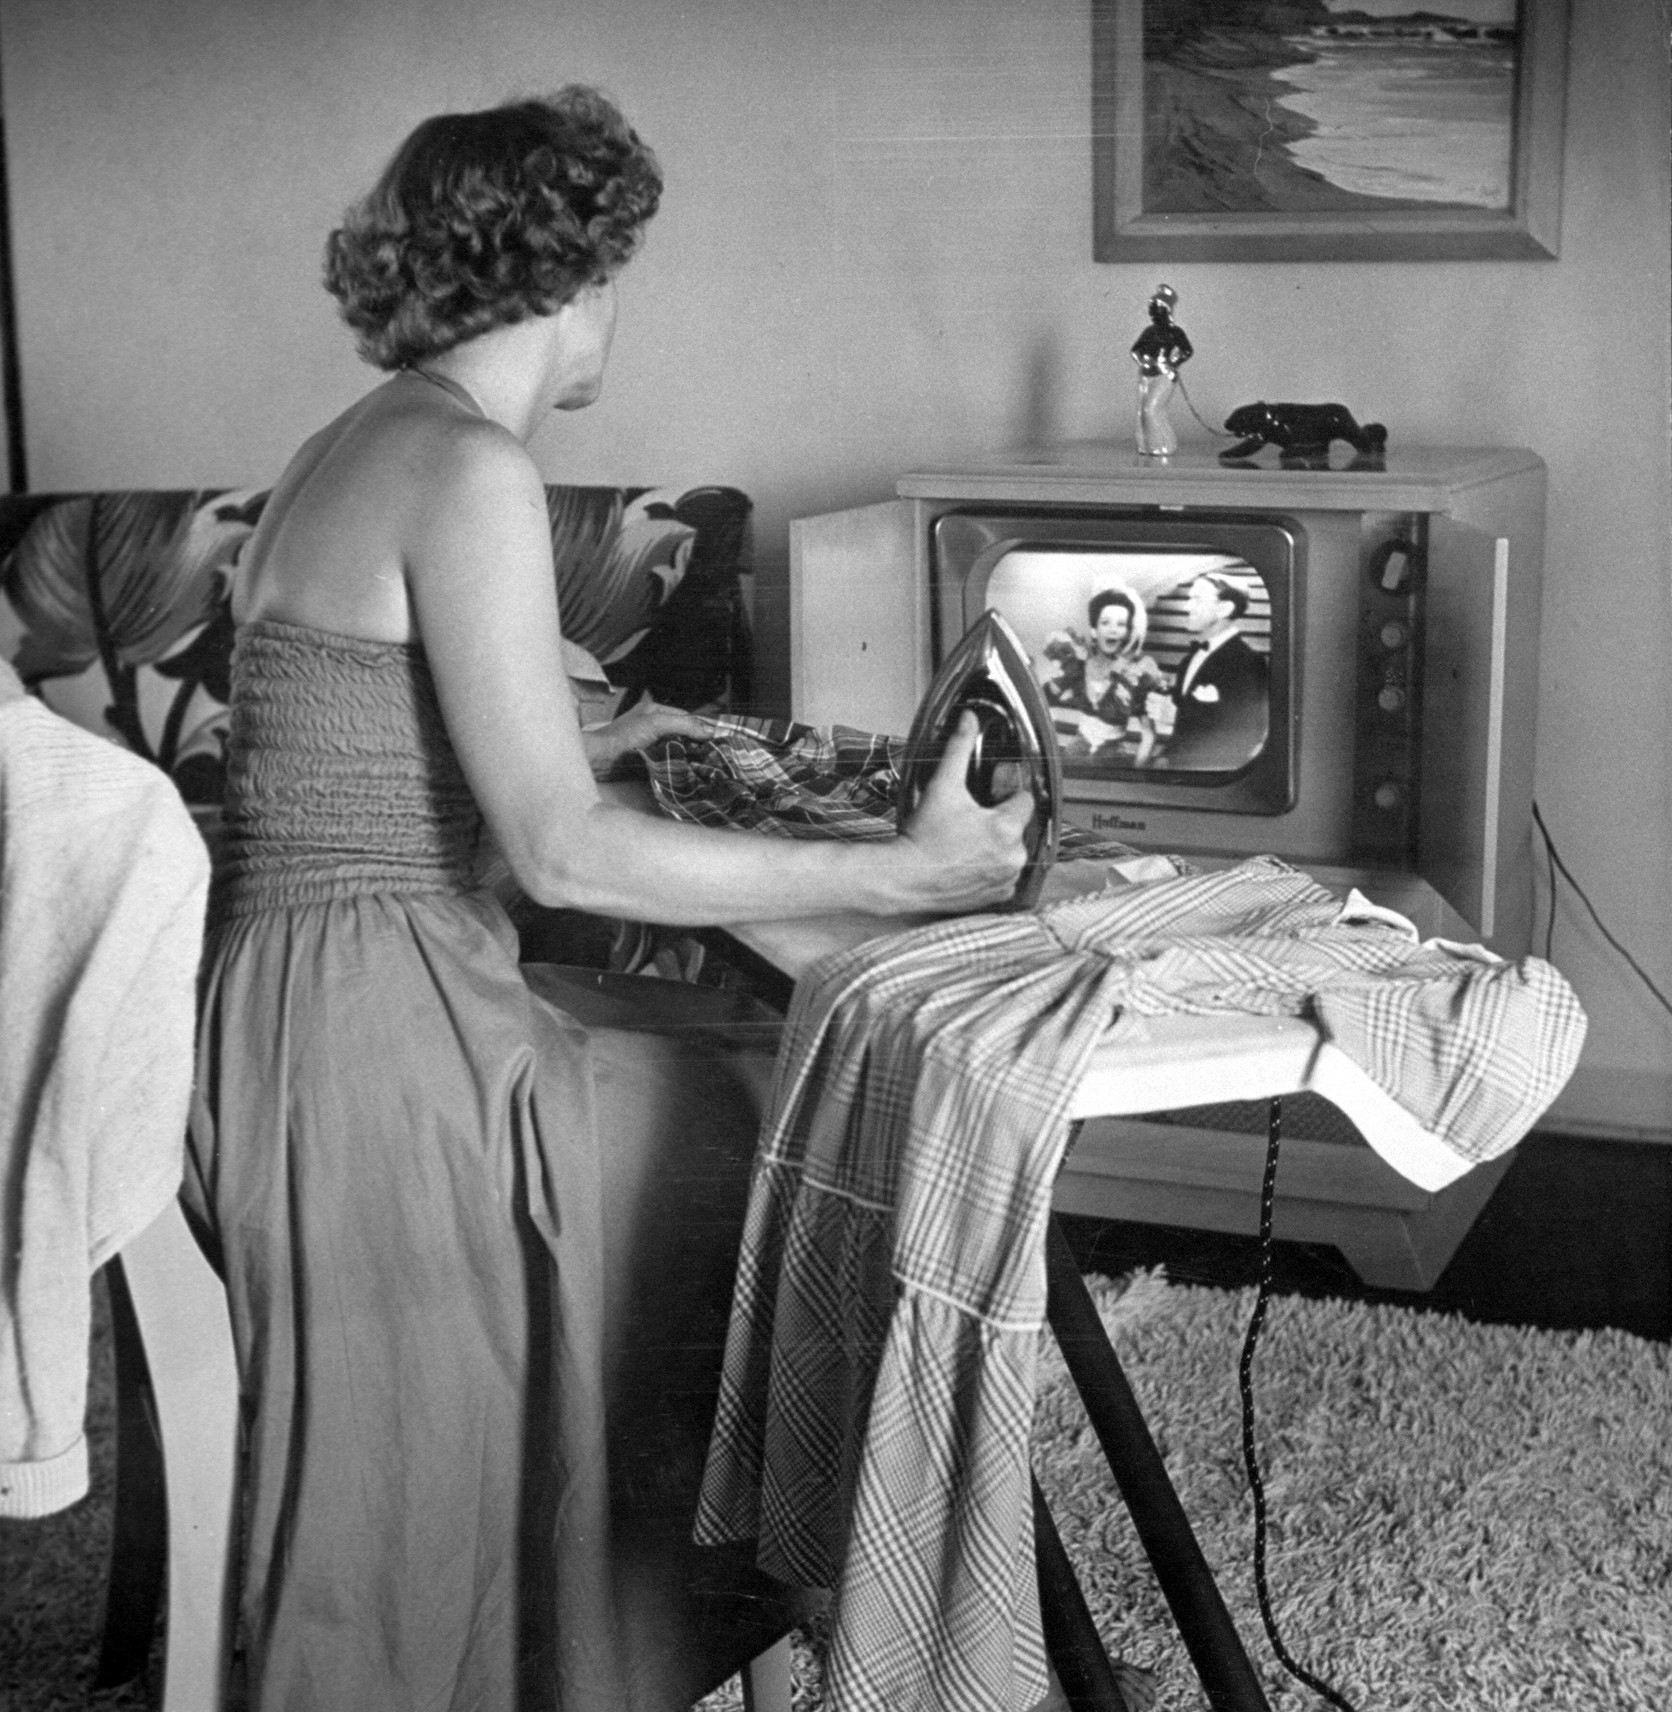 A woman irons while watching T.V., 1952.